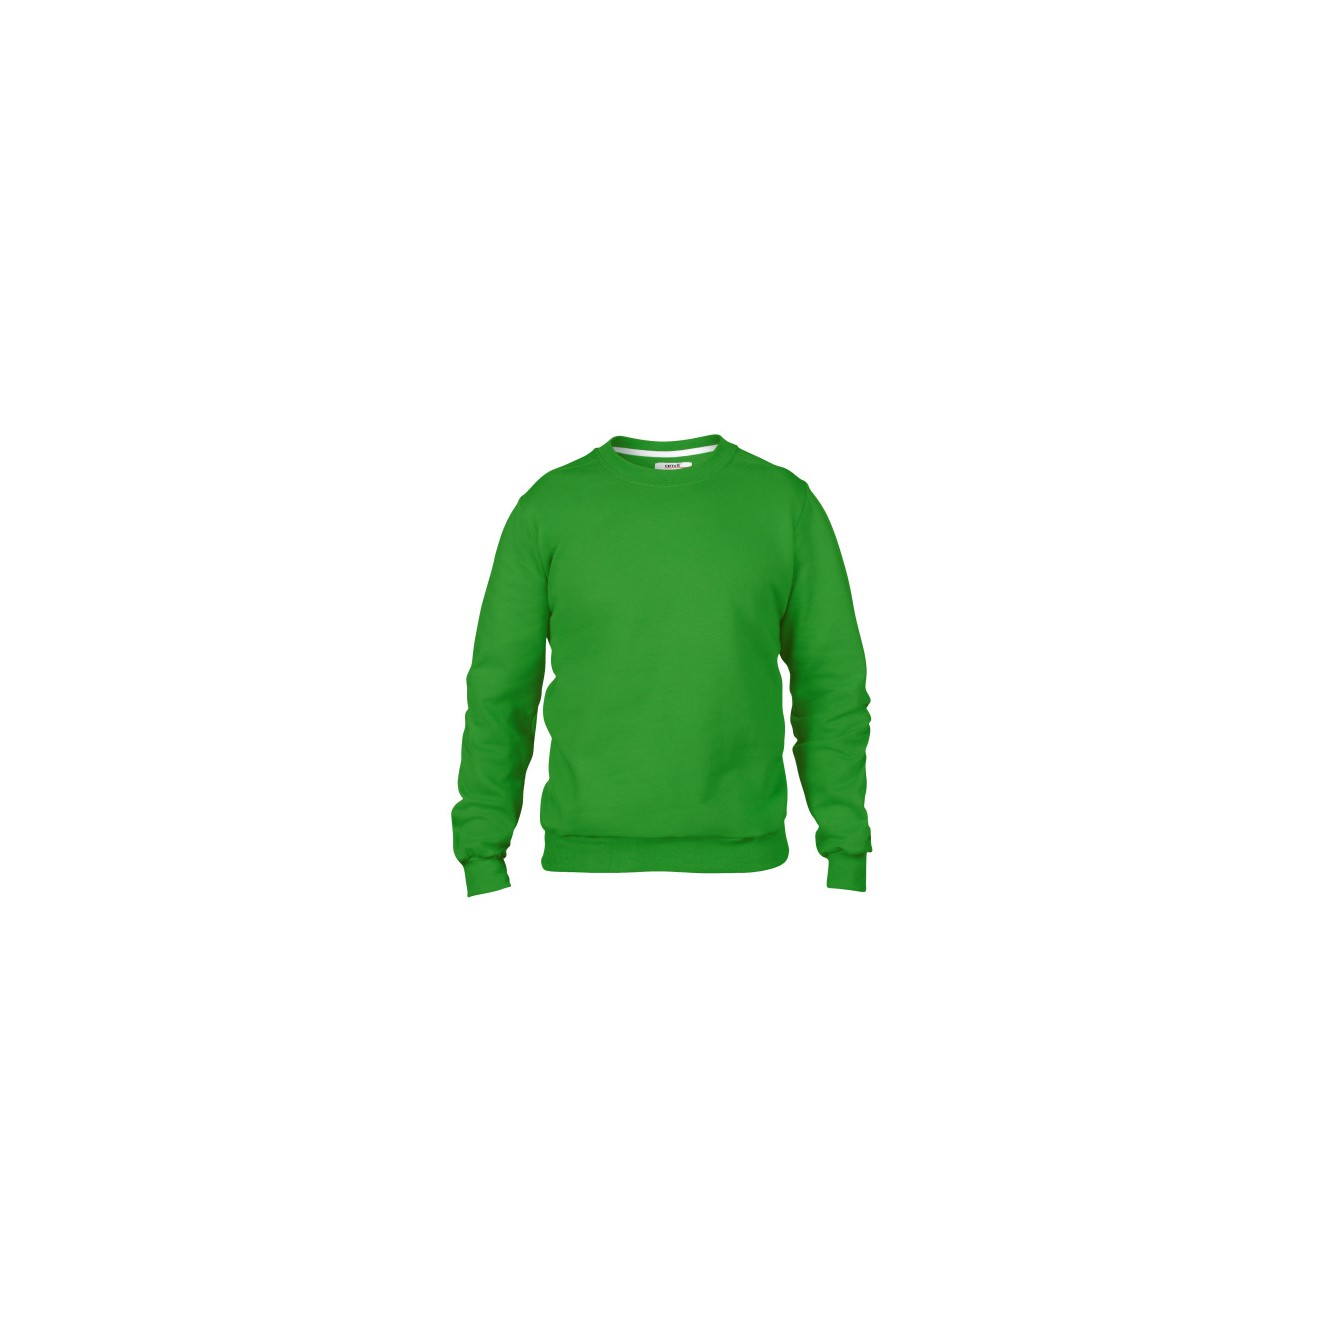 Sweater crewneck for him